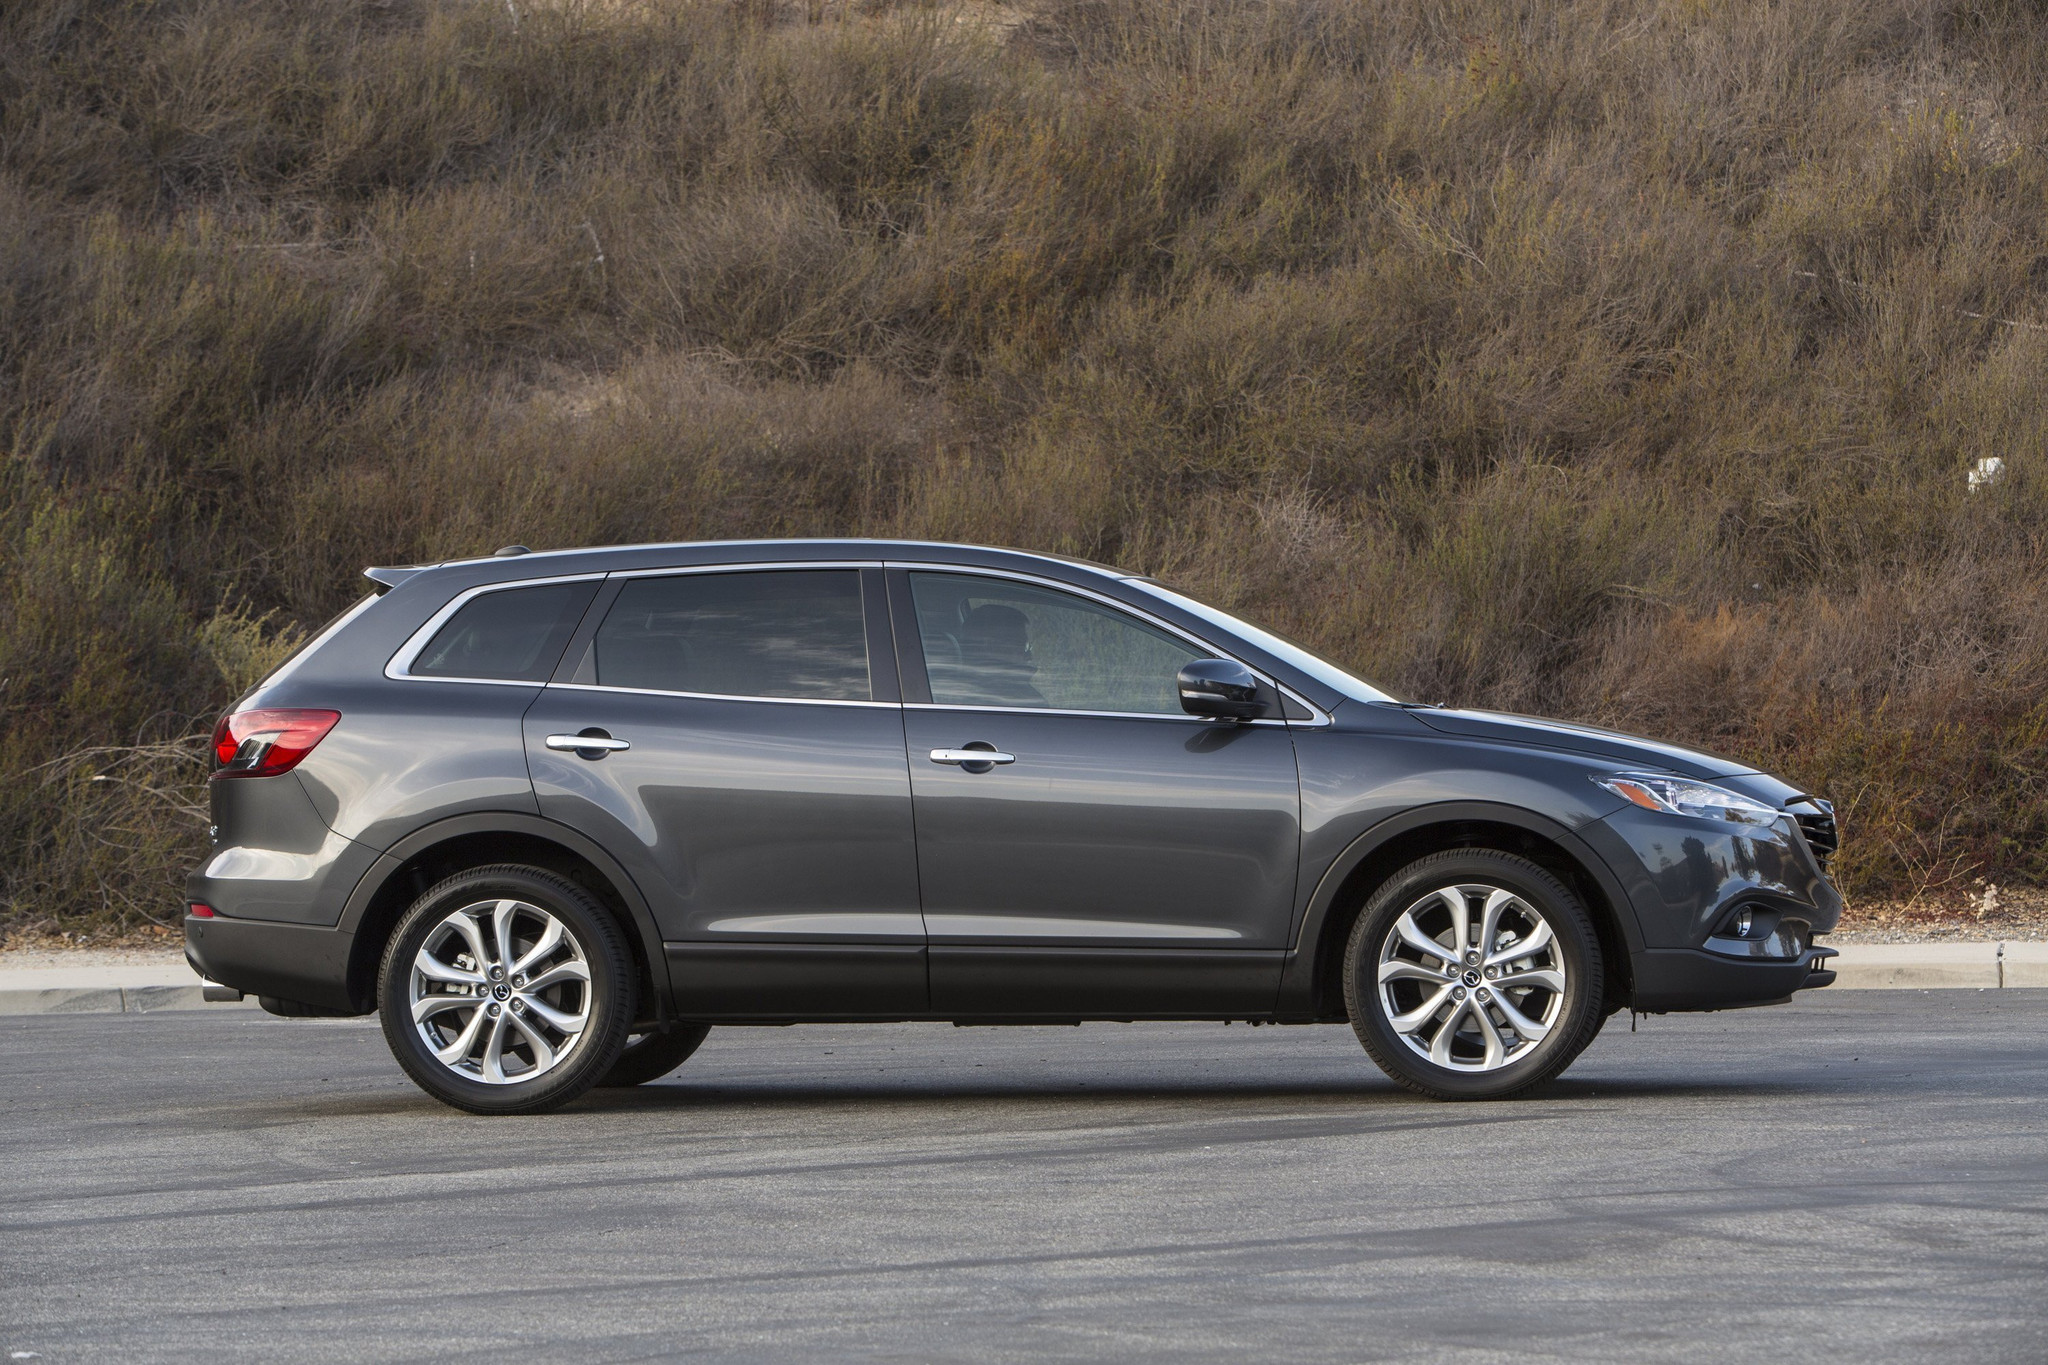 2016 Mazda CX9 crossover balances style with value power with